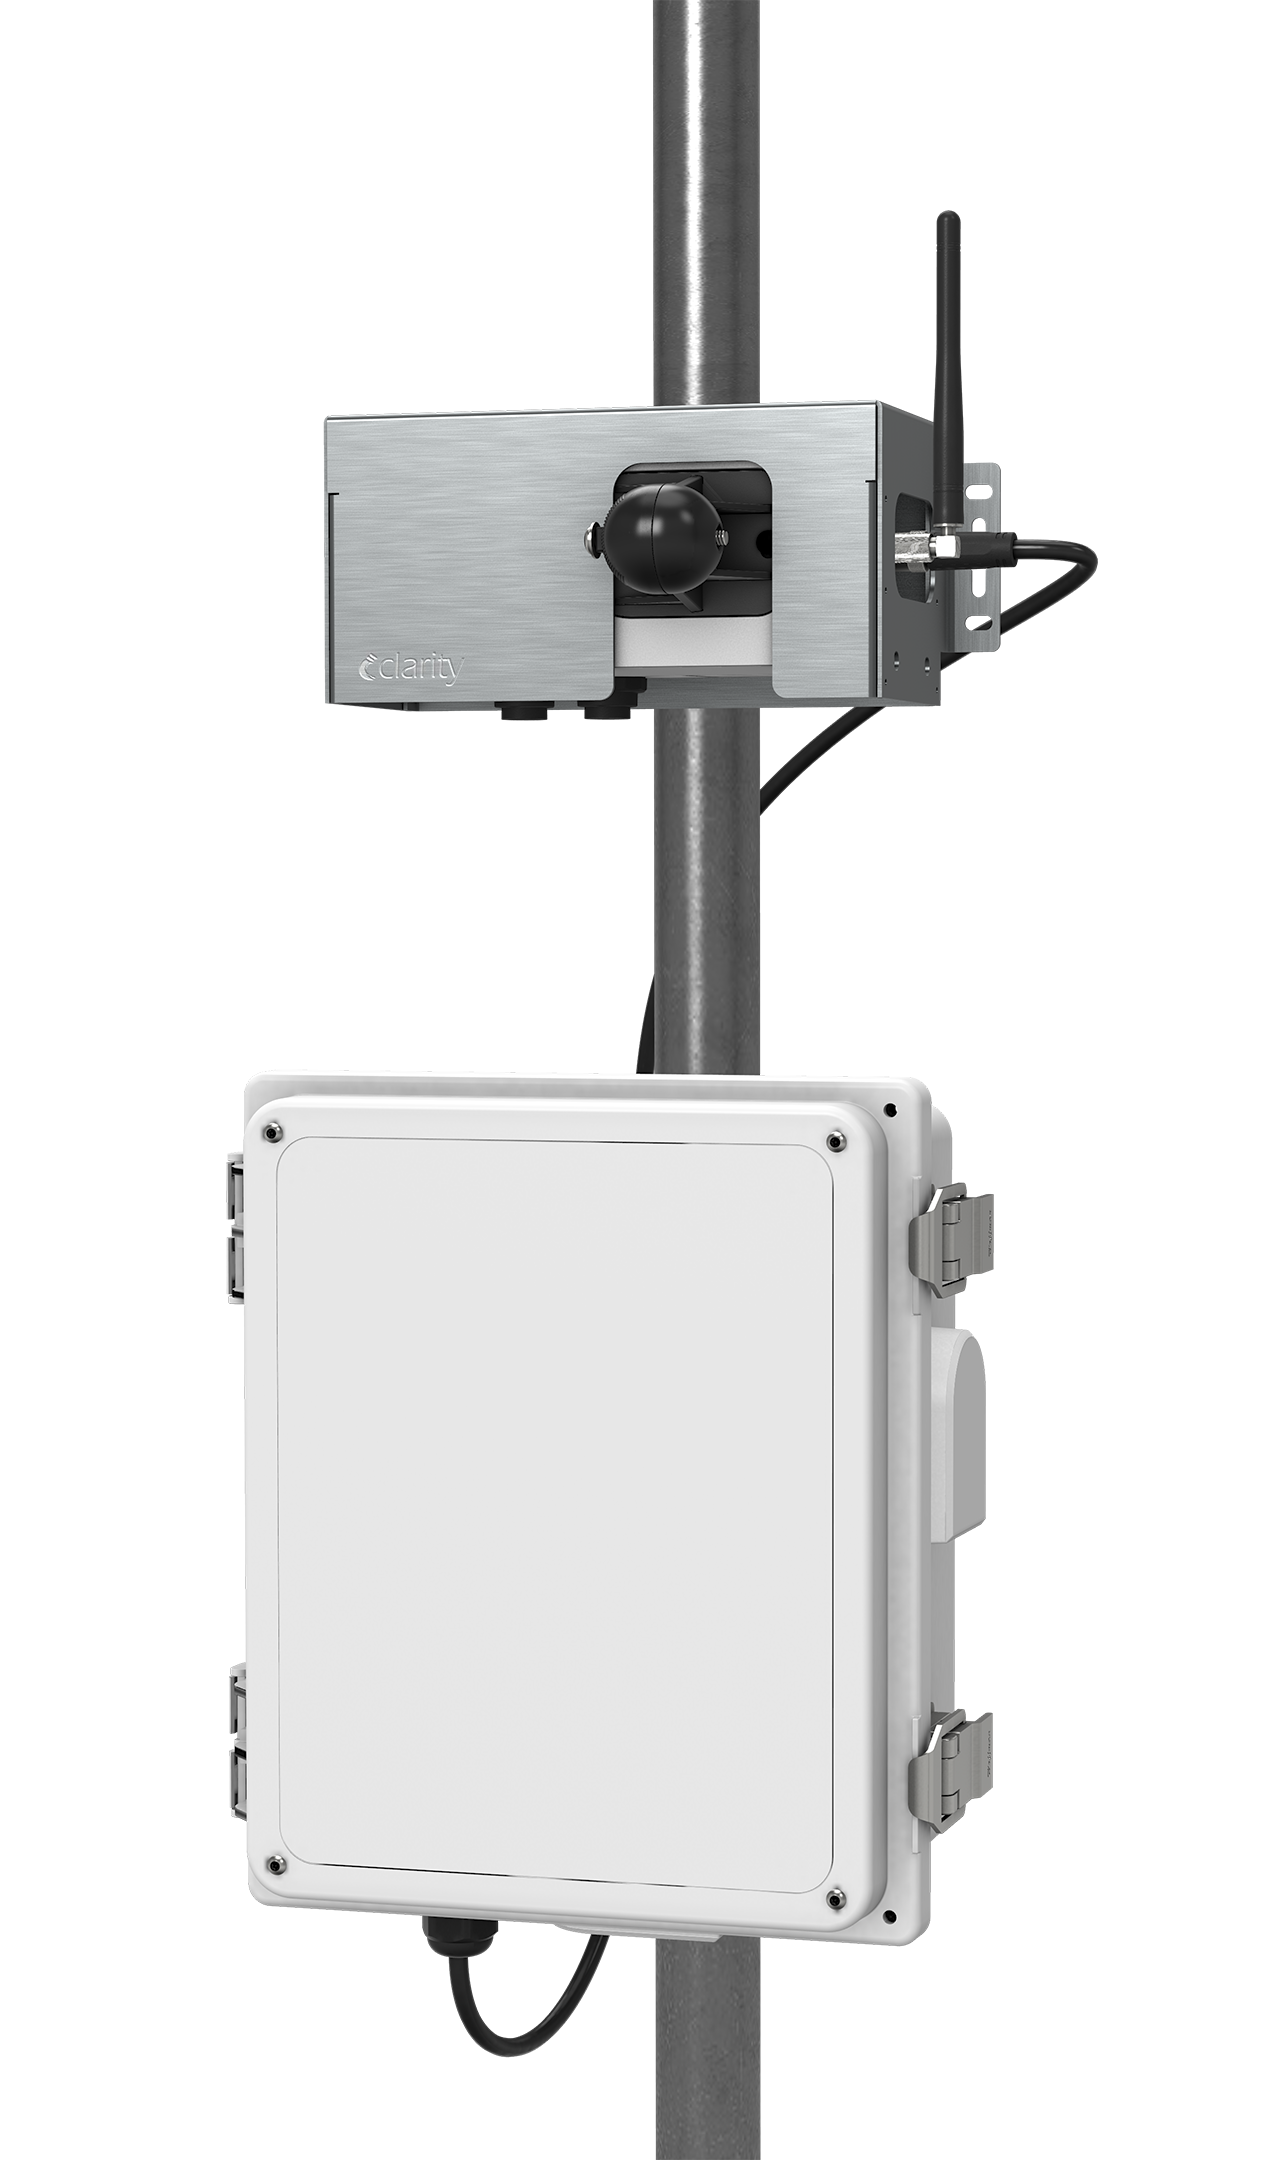 Clarity's air quality monitoring Node-S hardware sensor measures PM2.5 and NO2.